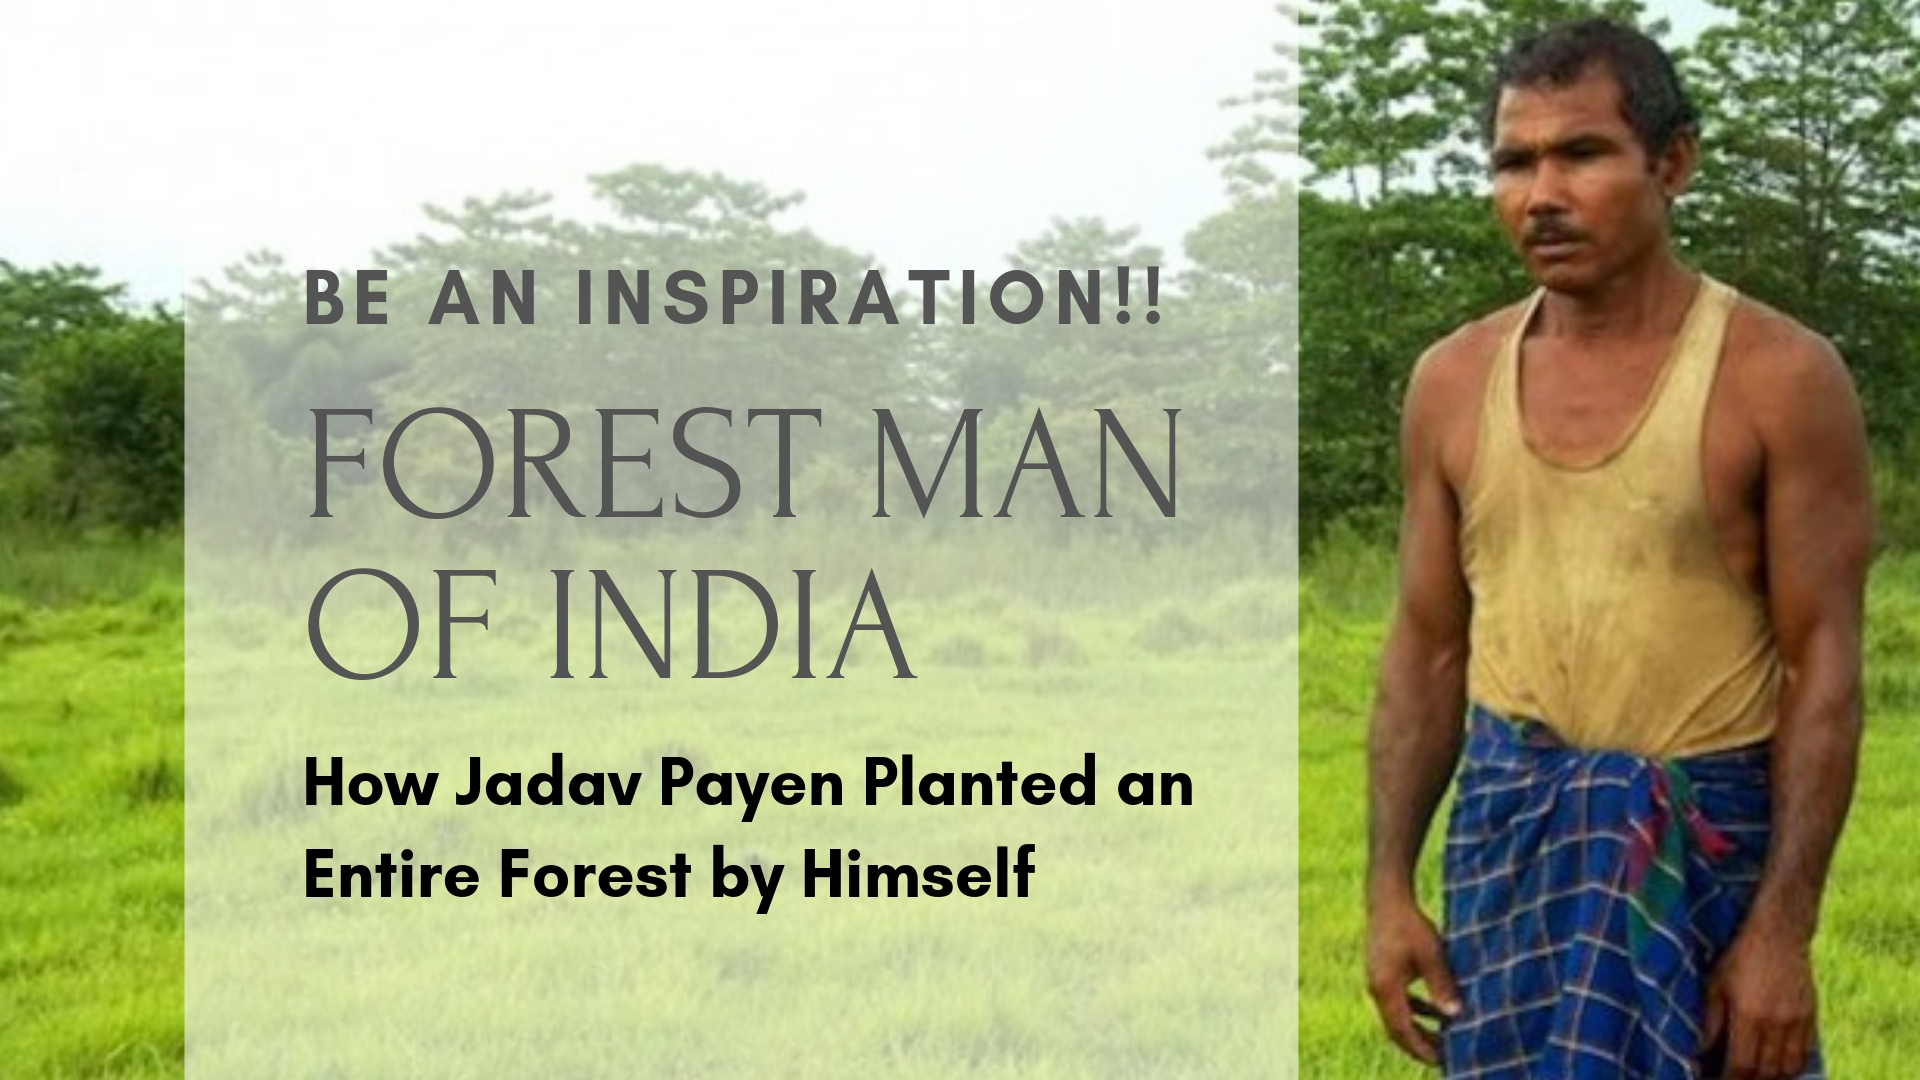 Make a Difference: Jadav Payeng Planted an Entire Forest by Himself